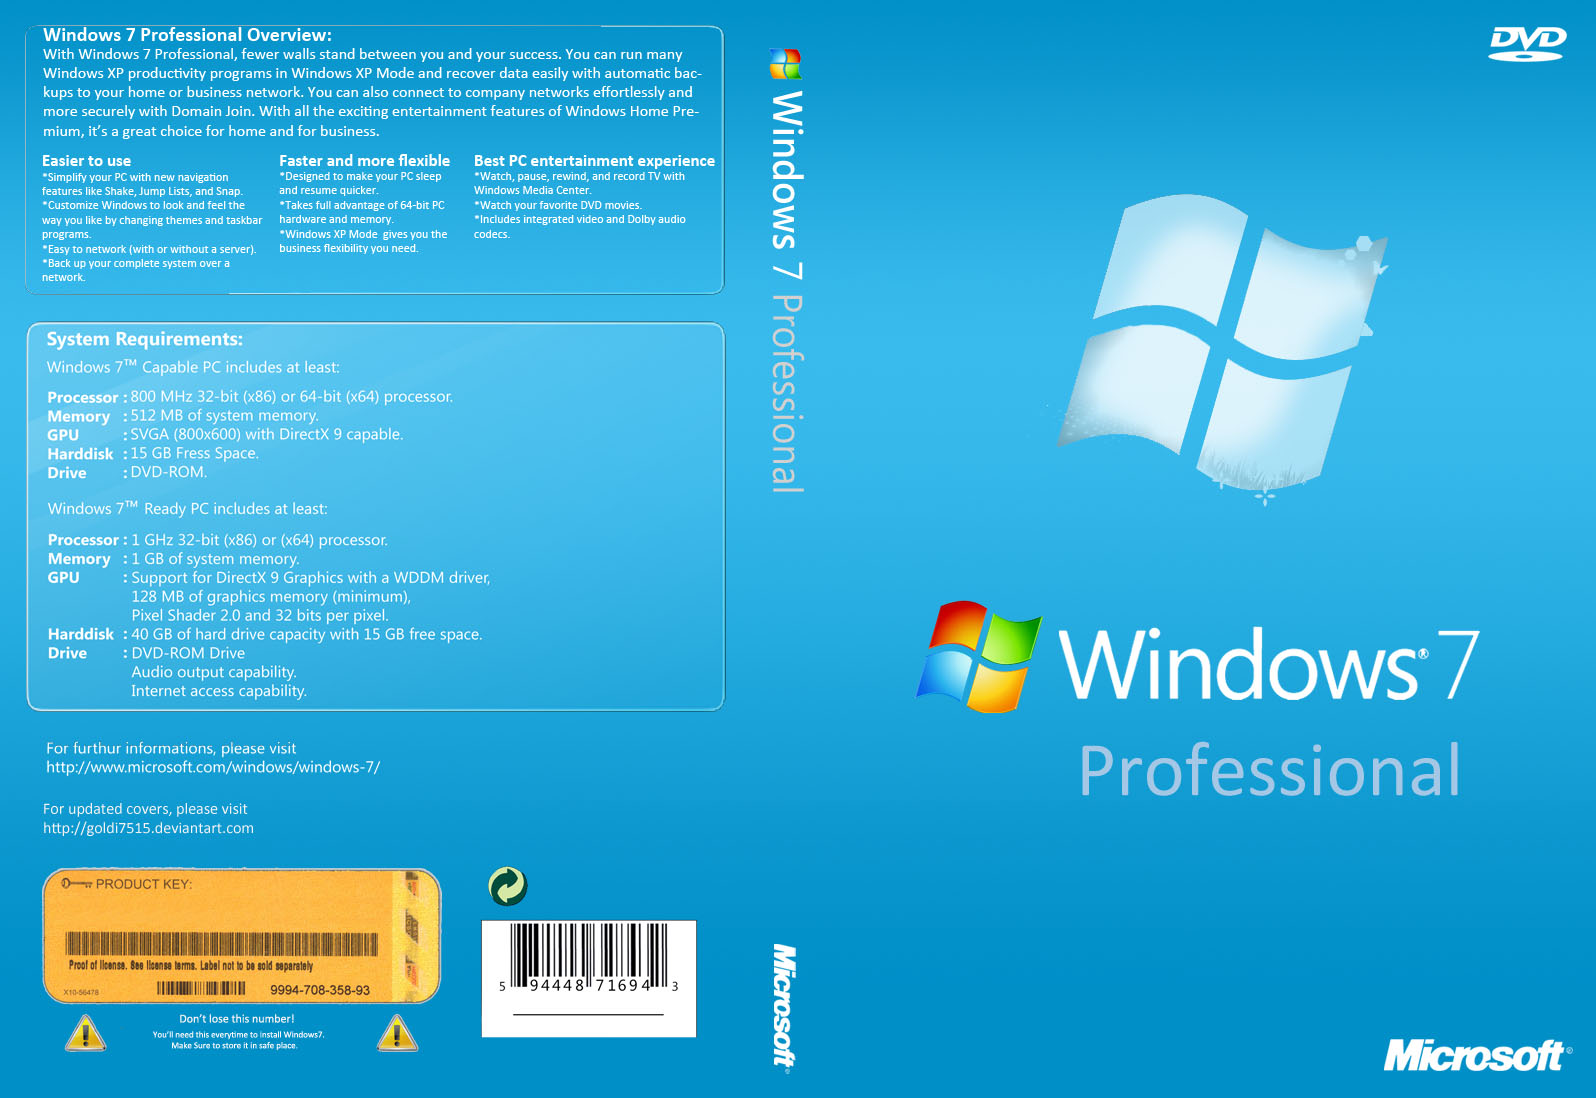 Dxcpl exe Download Windows 7 32-bit Iso - togrosere